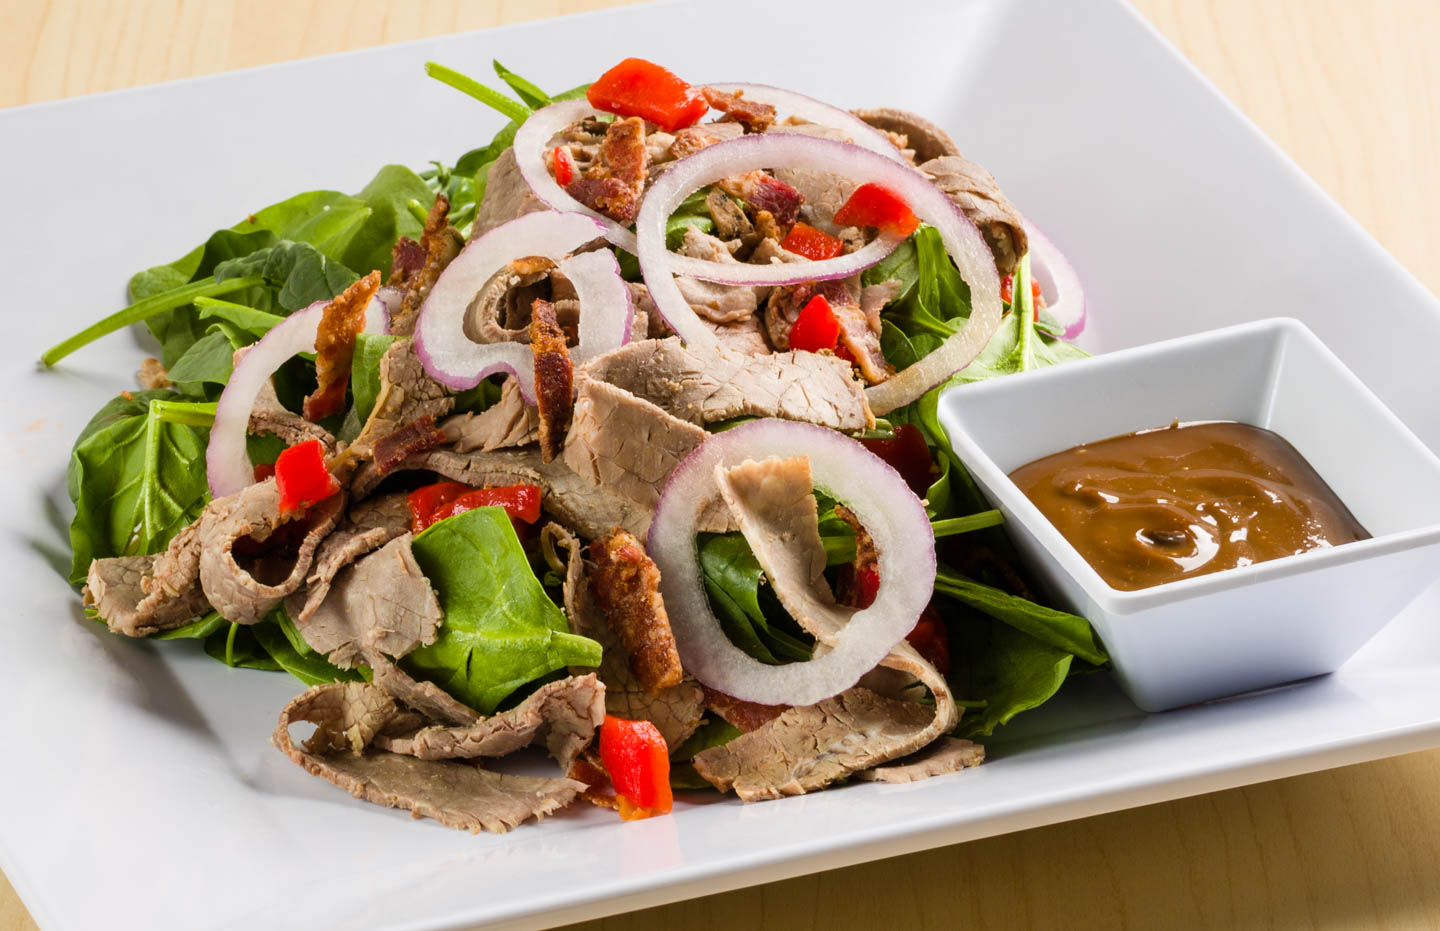 Beef and onion spinach salad